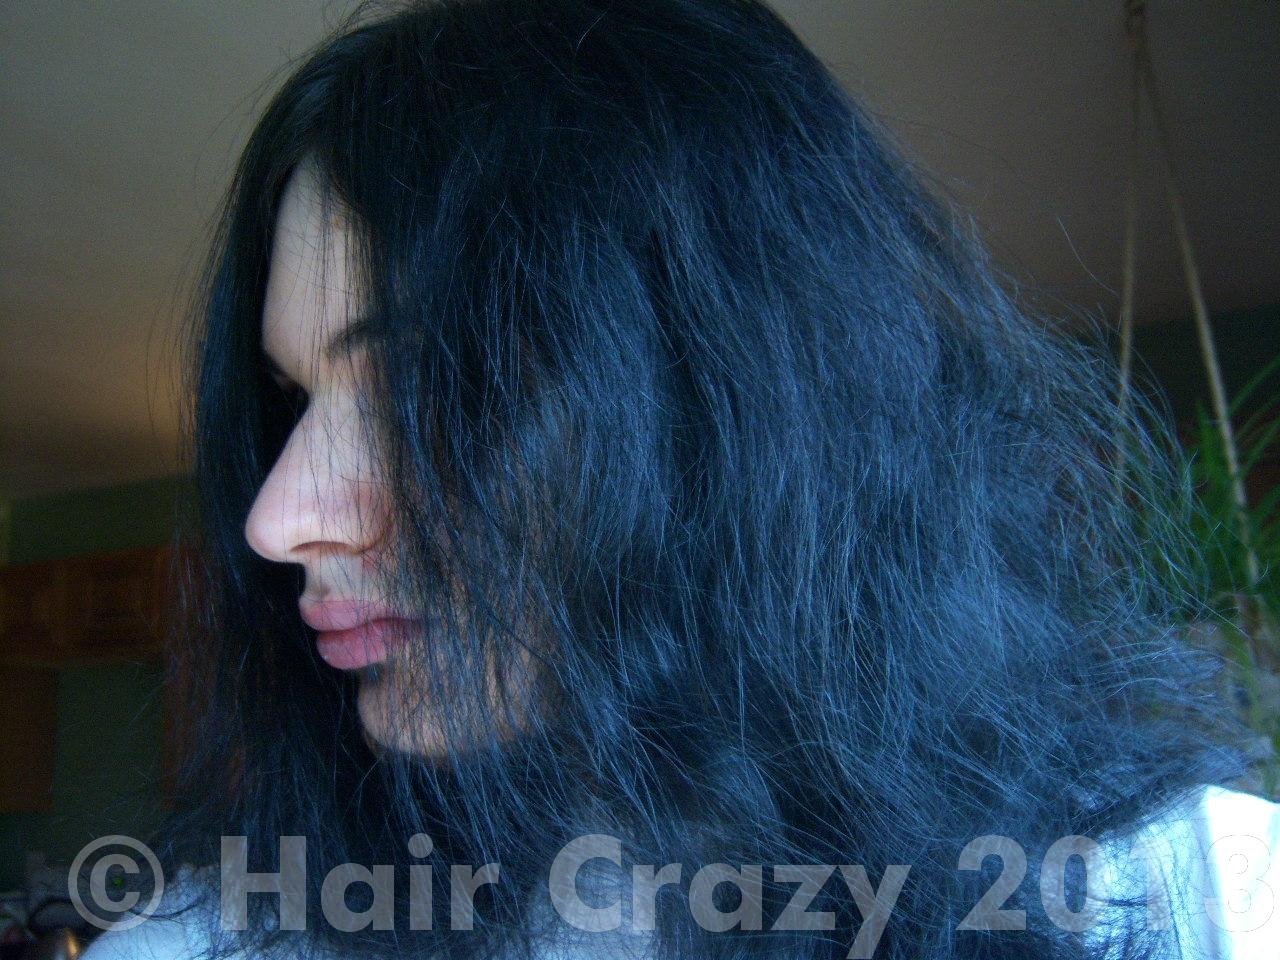 After Midnight On Unbleached Hair Forums Haircrazy Com